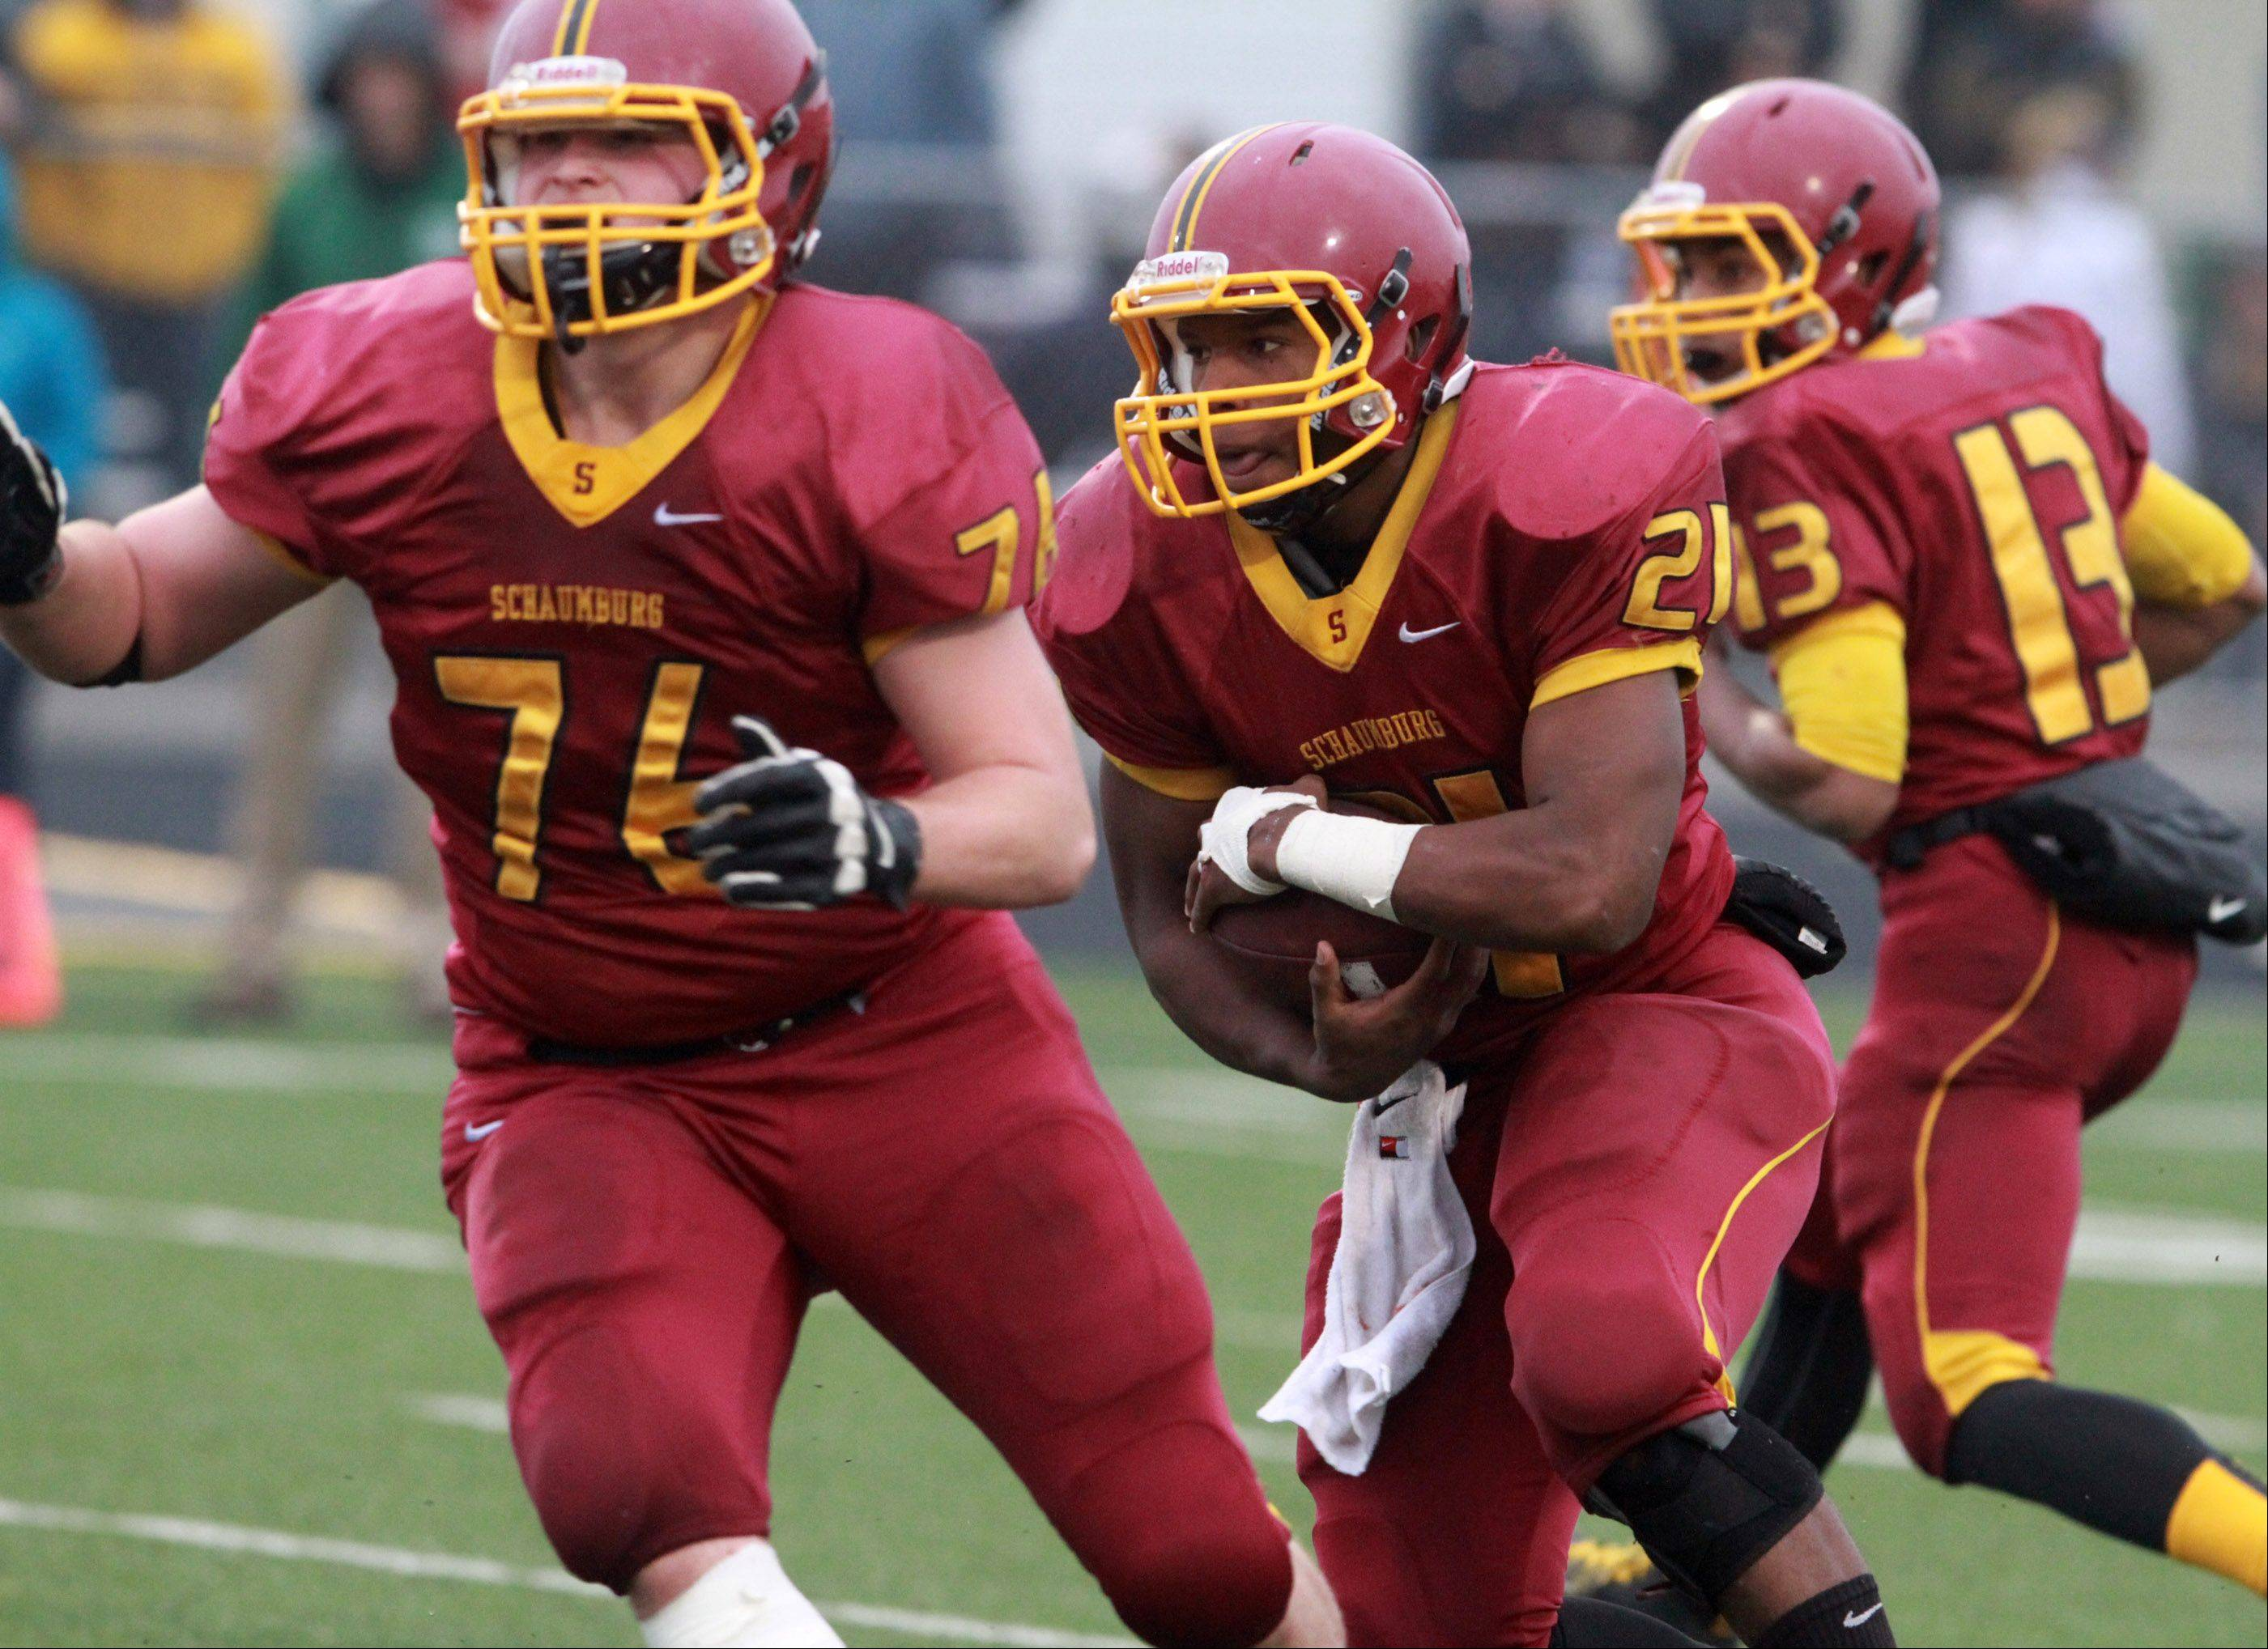 Schaumburg running back Justice Macneal-Young runs behind blocking from Aleksander Piotrowski against Glenbard West in a quarterfinal playoff game on Saturday in Schaumburg.